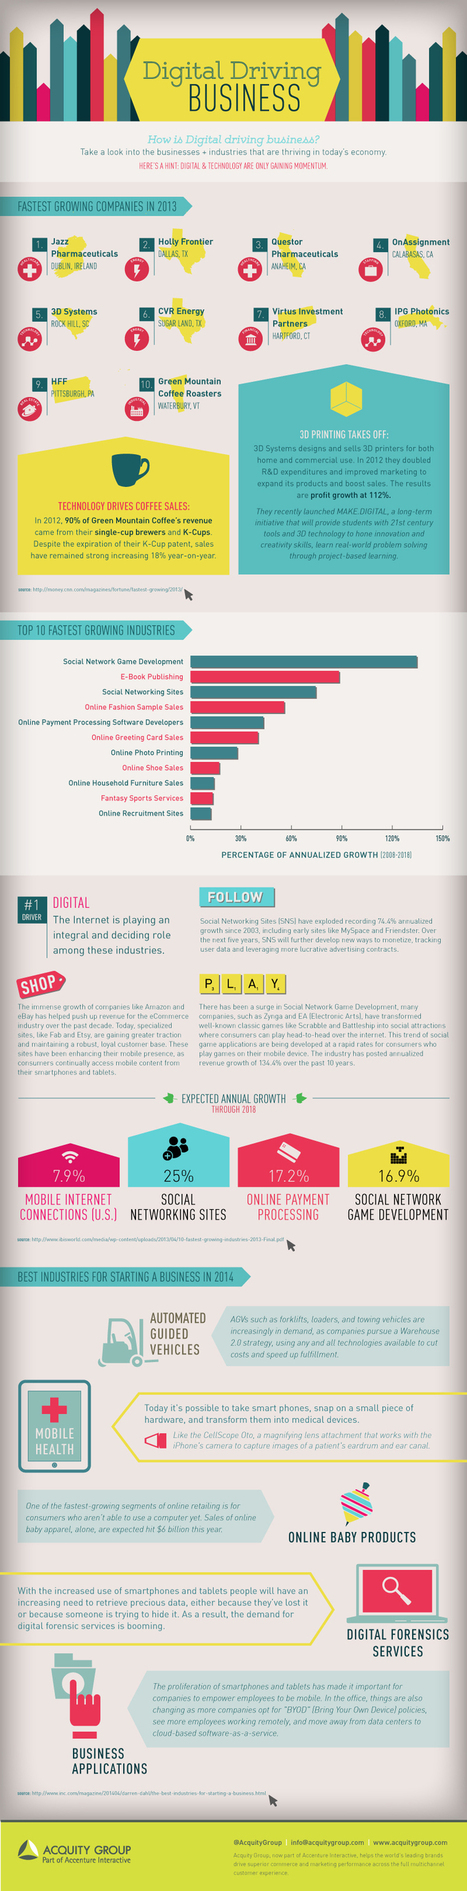 Digital Driving Business [Infographic] | MarketingHits | Scoop.it